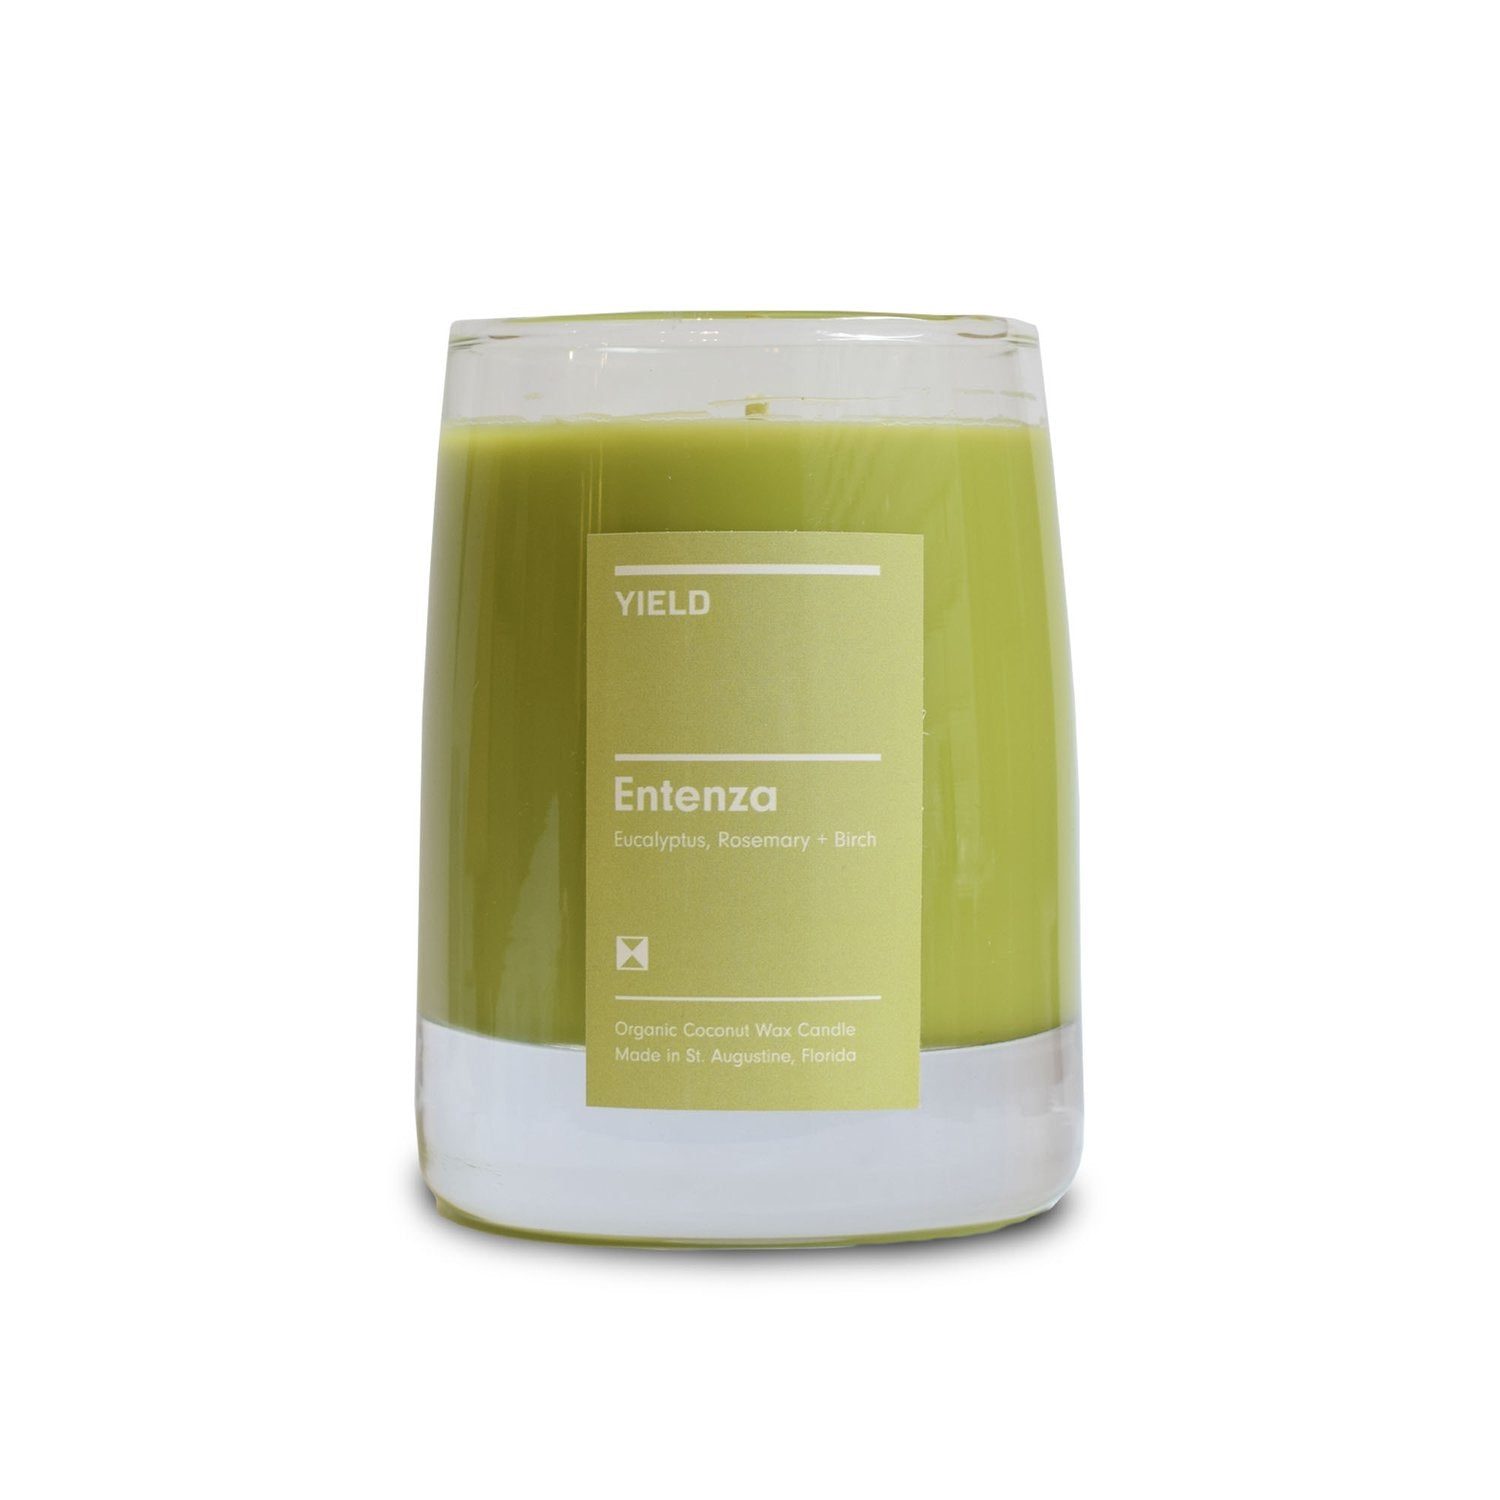 """Entenza"" 8oz. Organic Coconut Wax Candle in Glass"